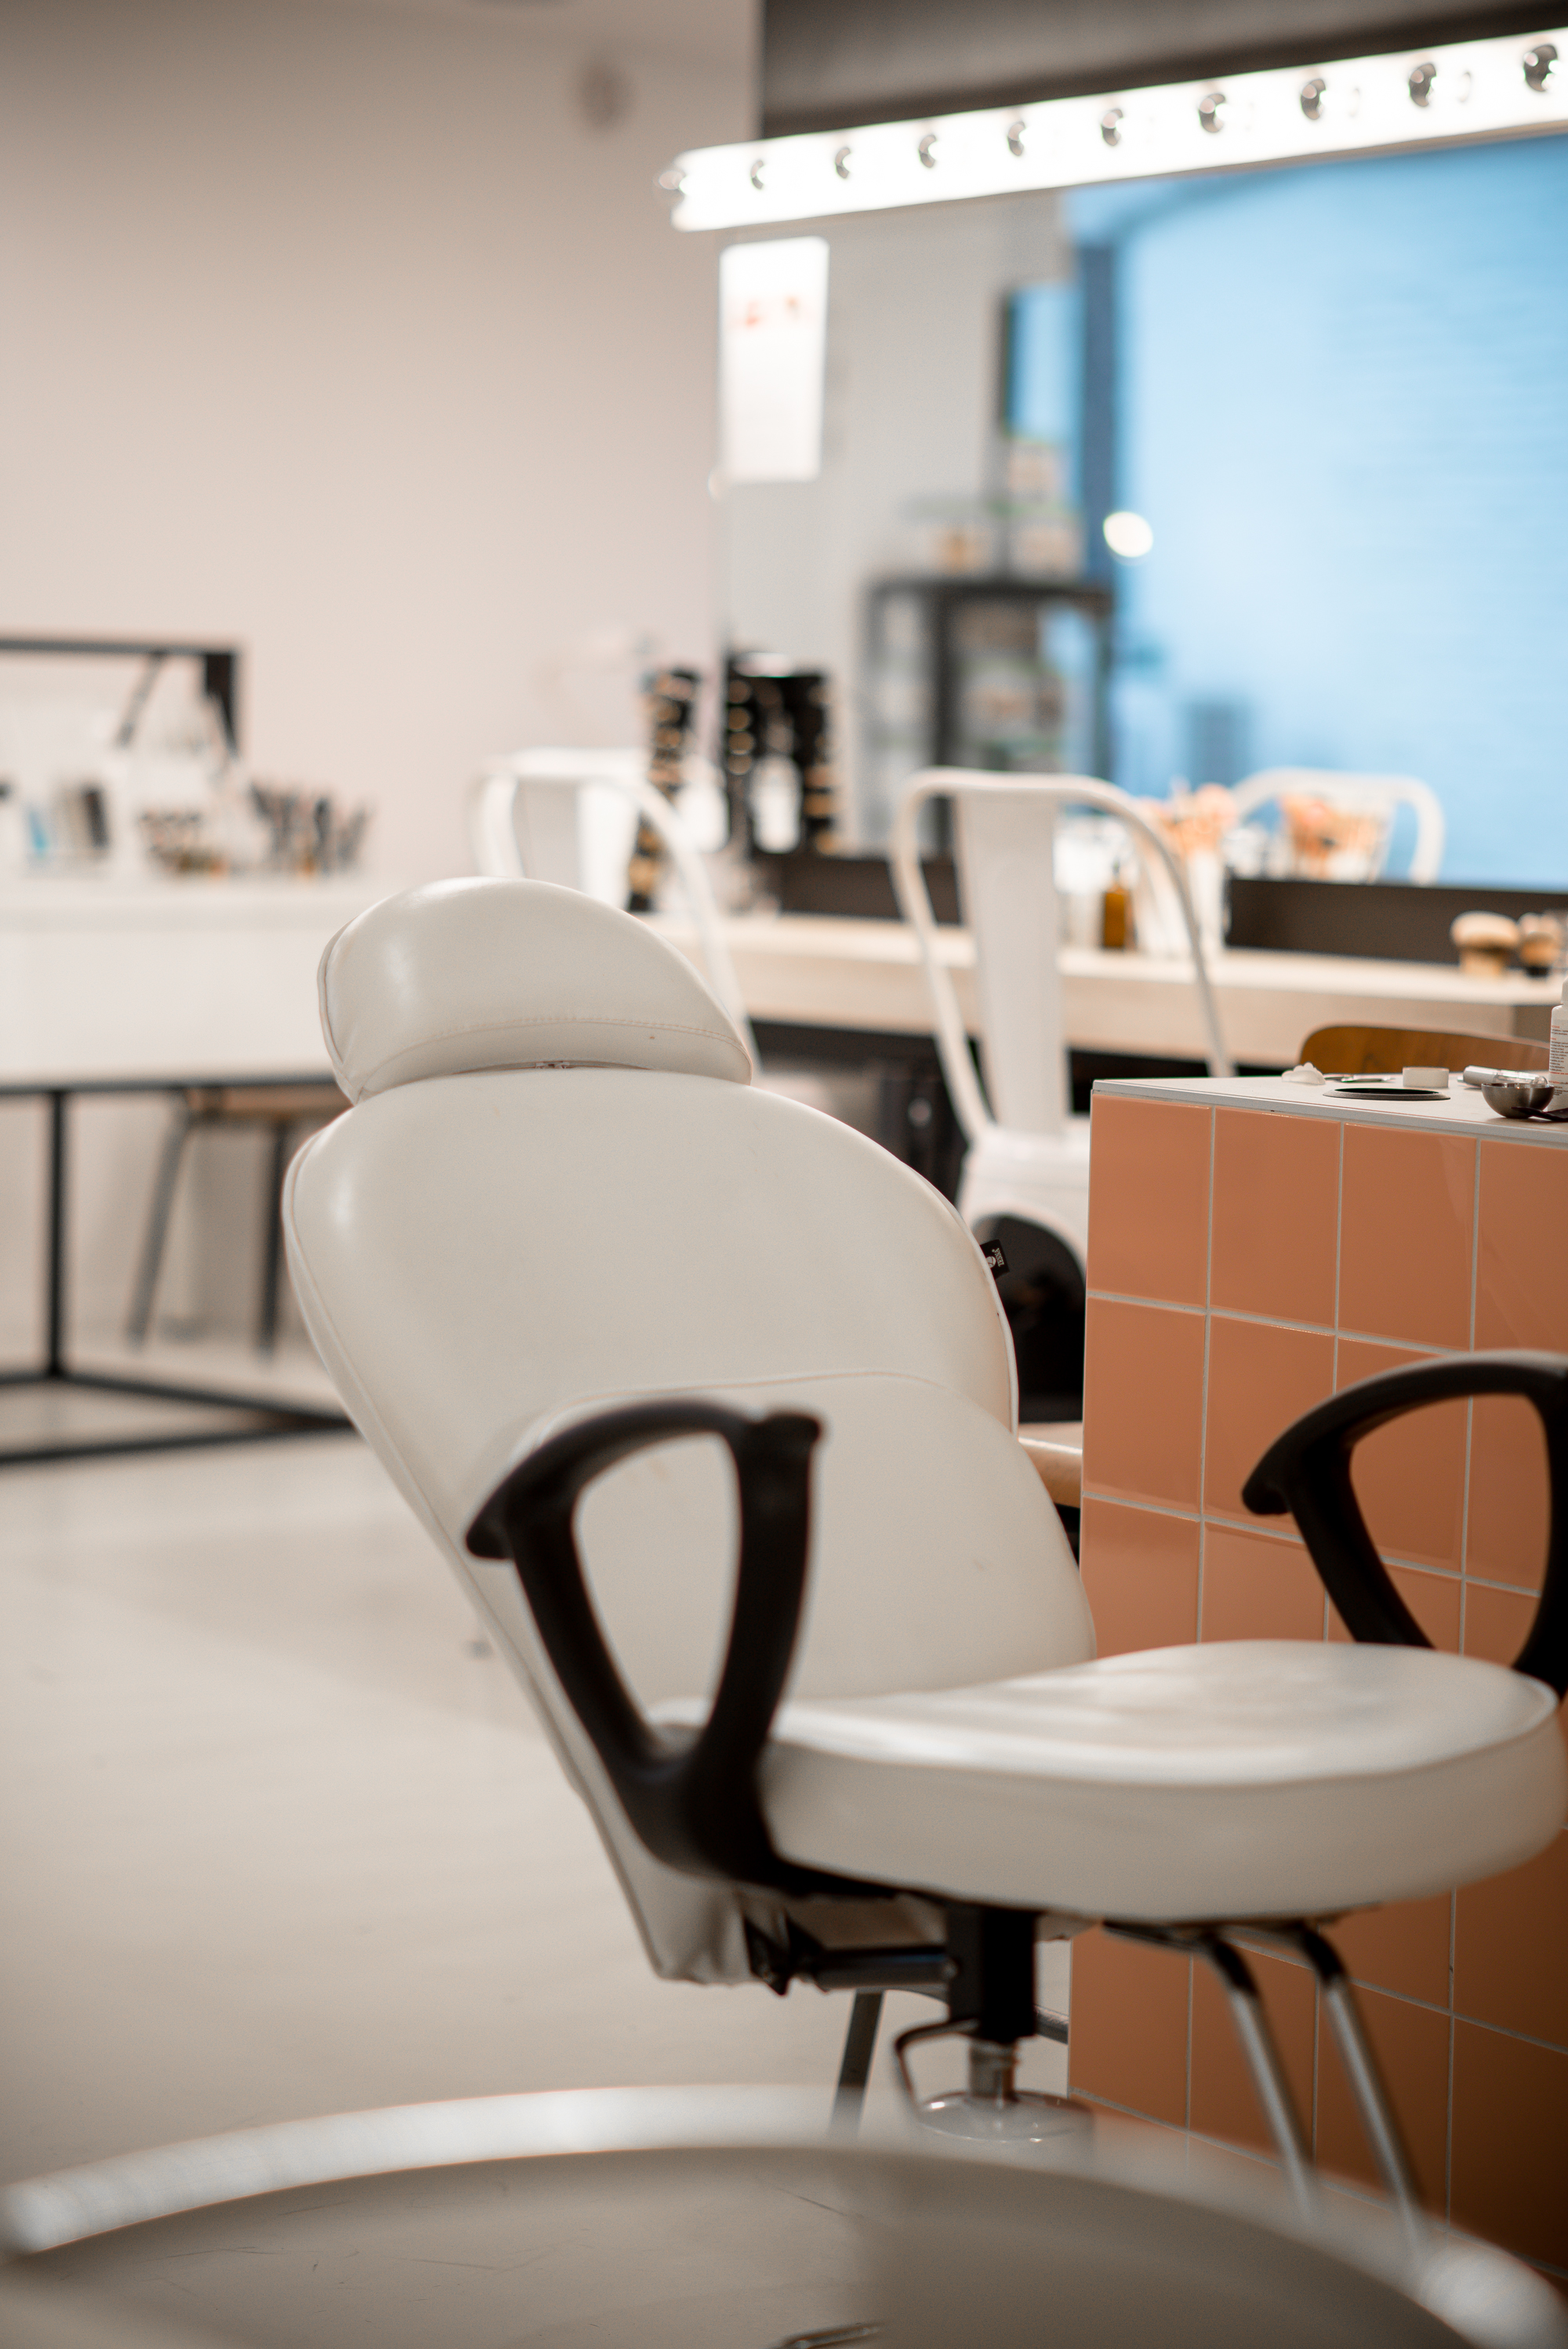 cafe-beaute-hasselt-hotpost-must-visit-beauty-22